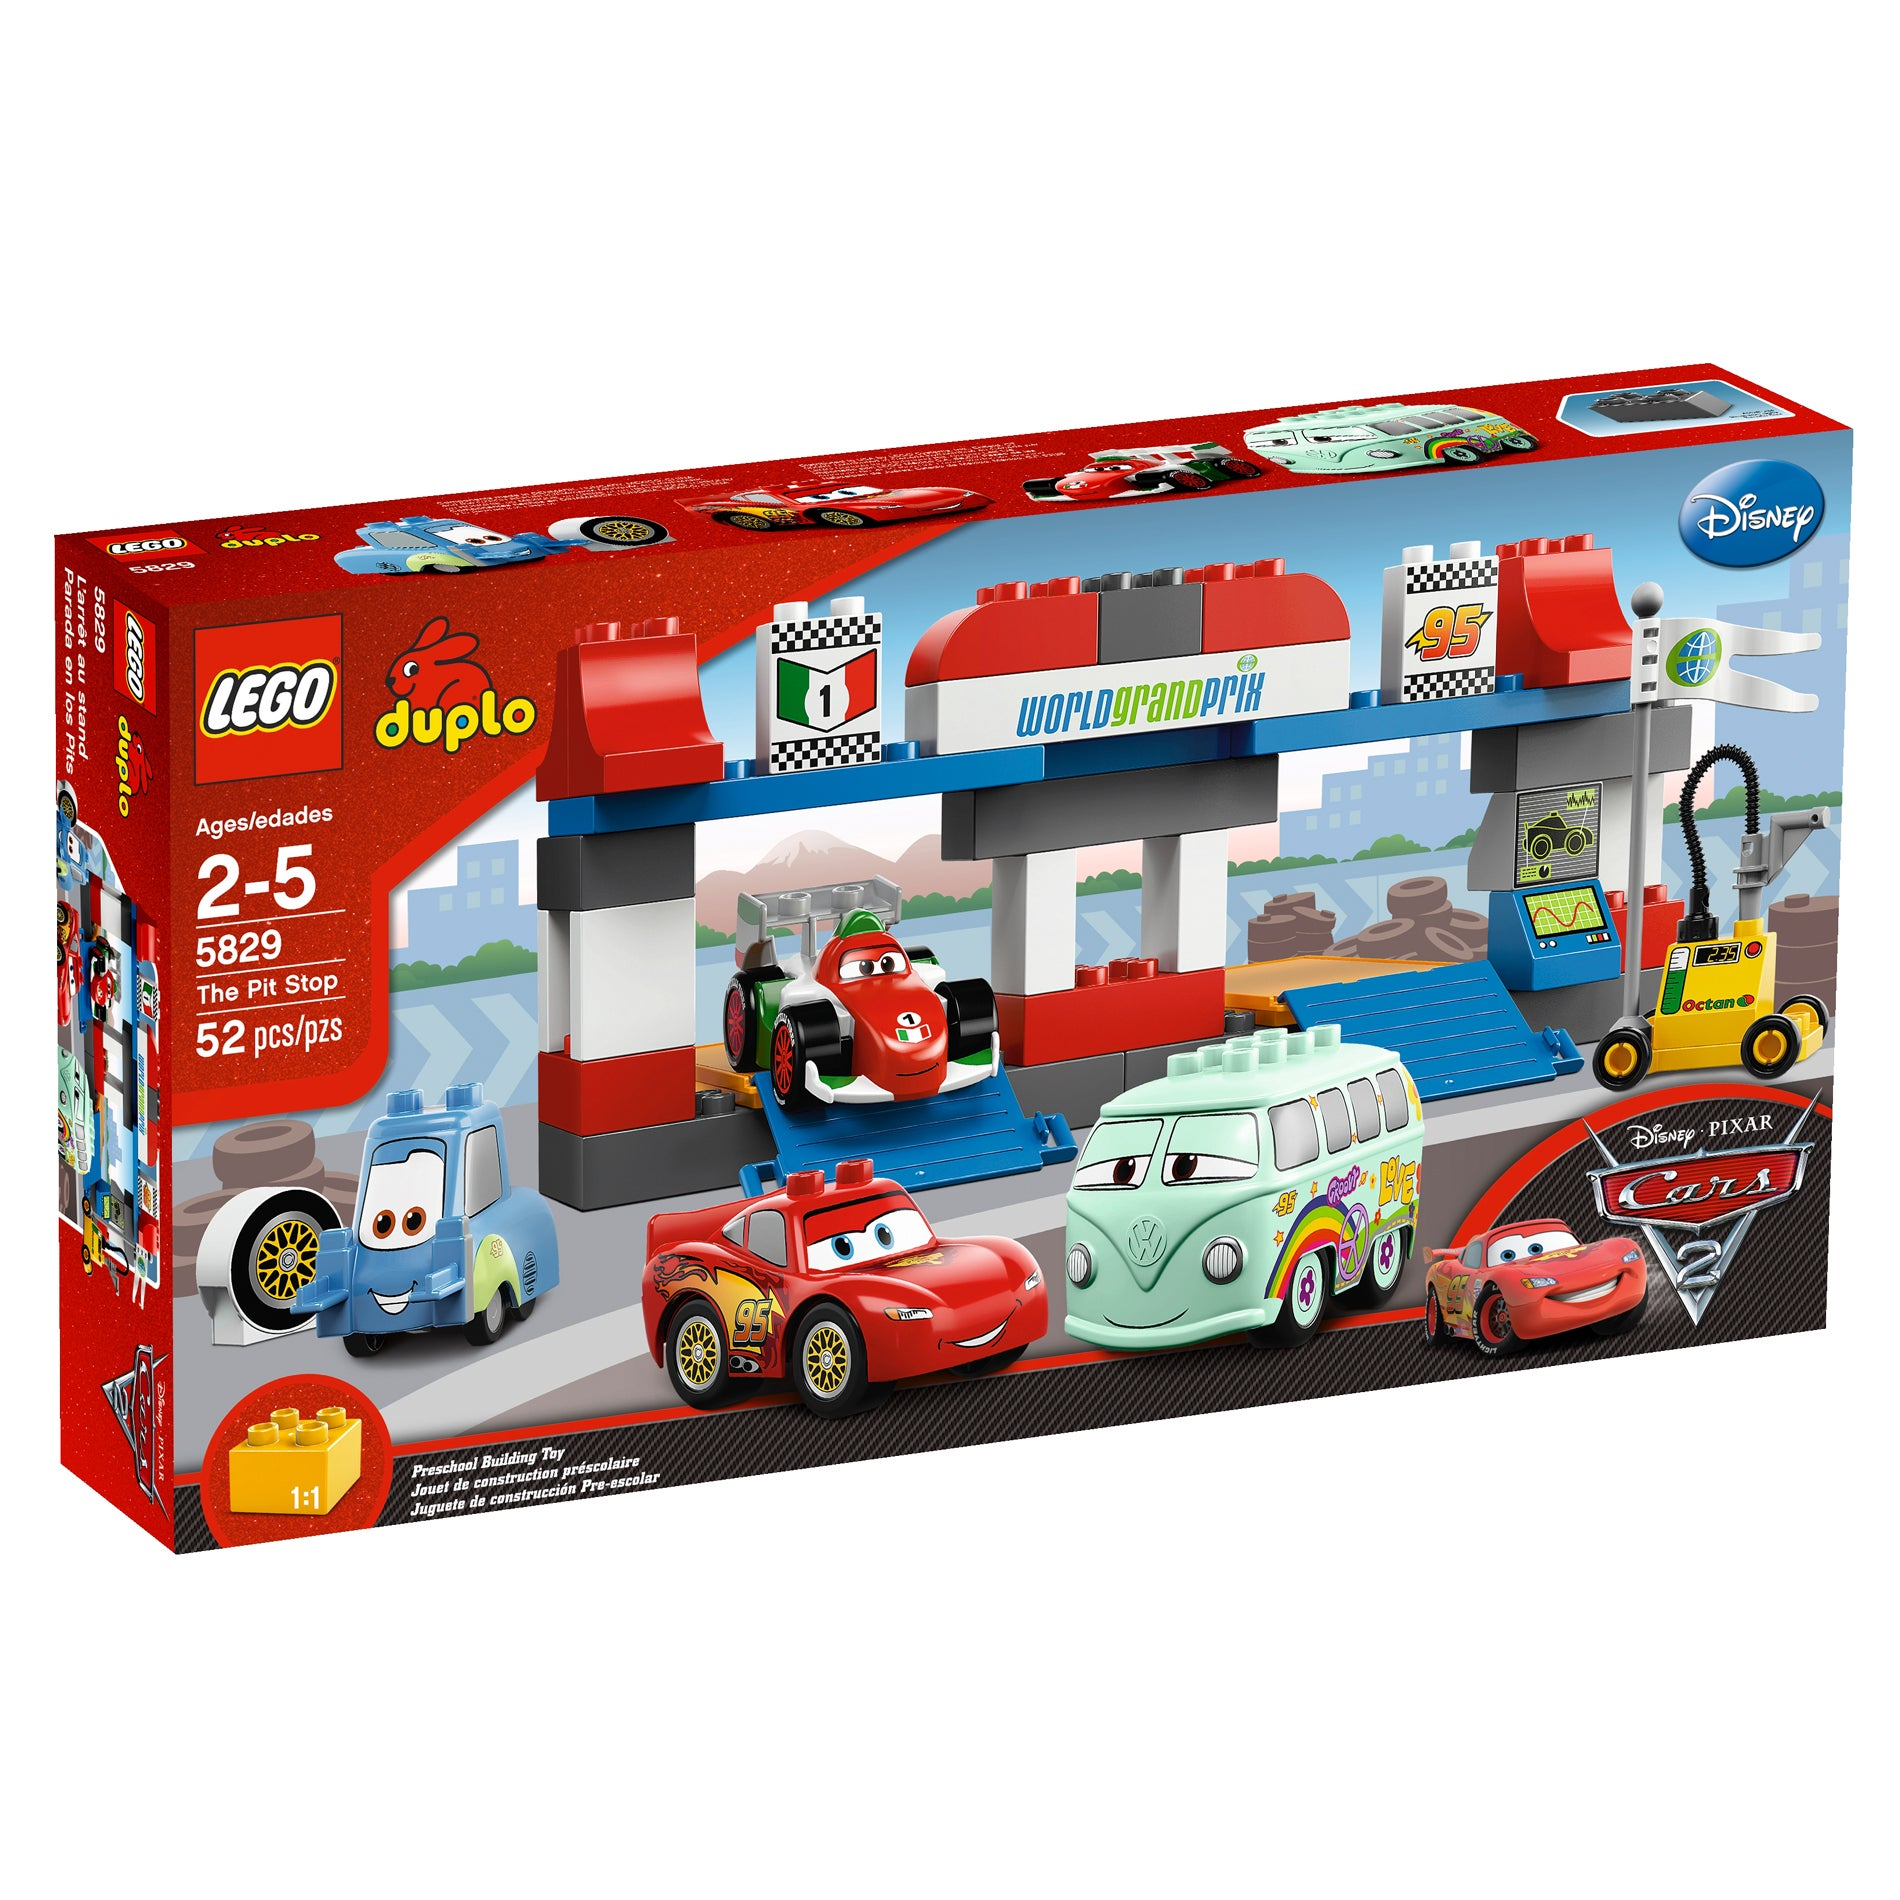 LEGO The Pit Stop Toy Set